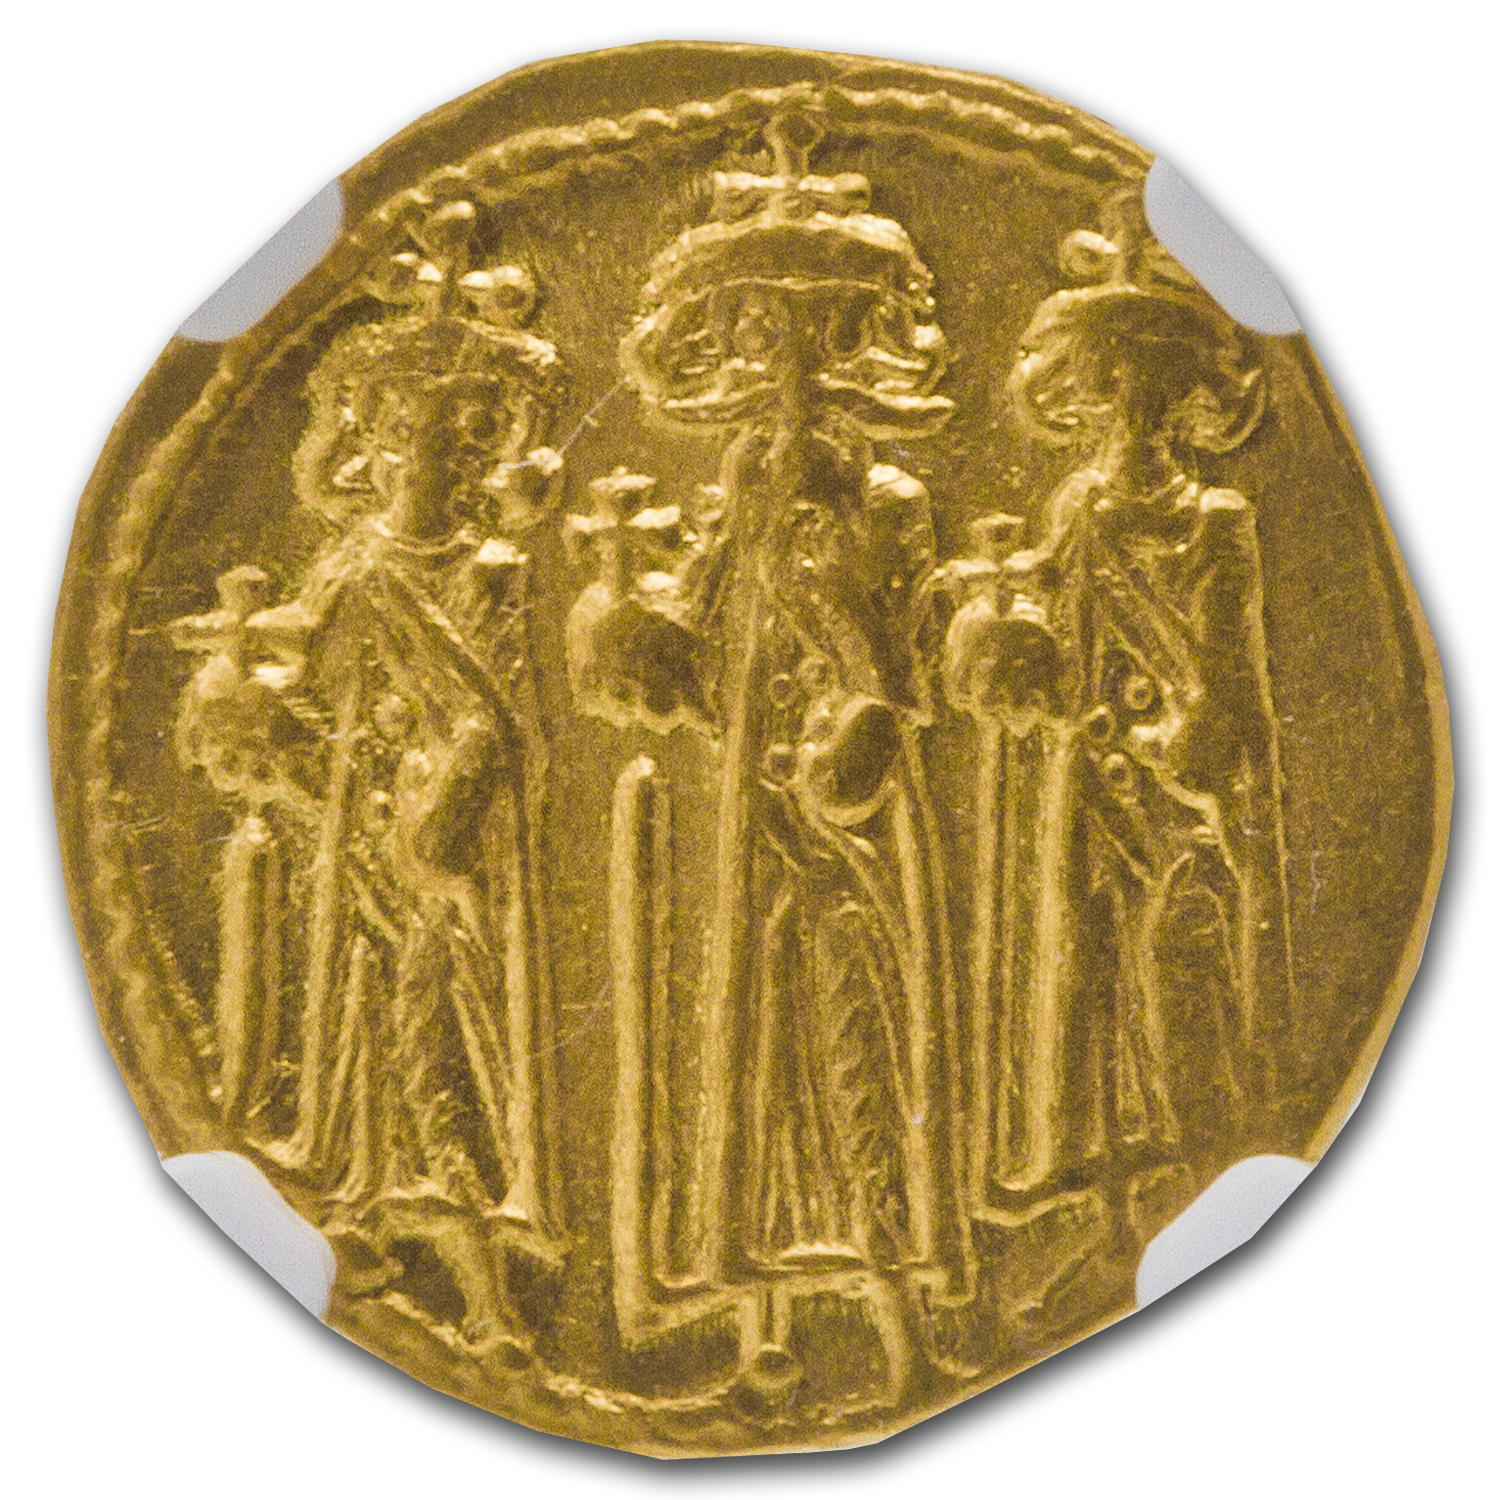 Byzantine Gold Solidus Emperor Heraclius Ch XF NGC (610-641 AD)